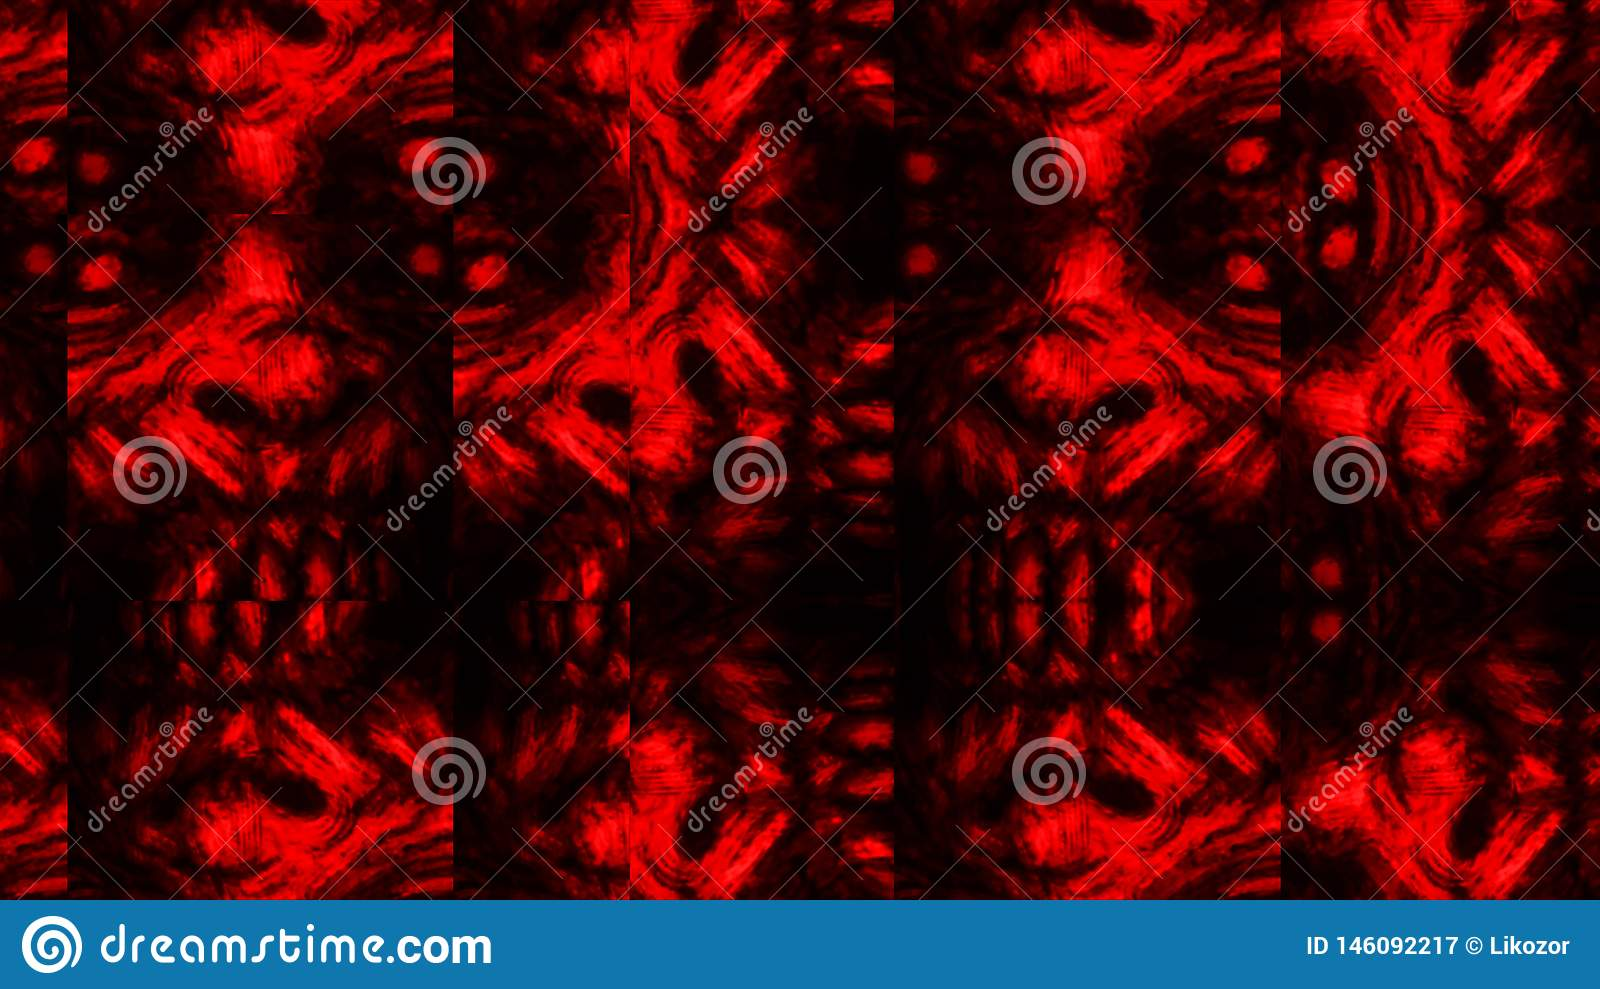 scary zombie face pattern black background scary zombie face pattern black background illustration horror genre 146092217